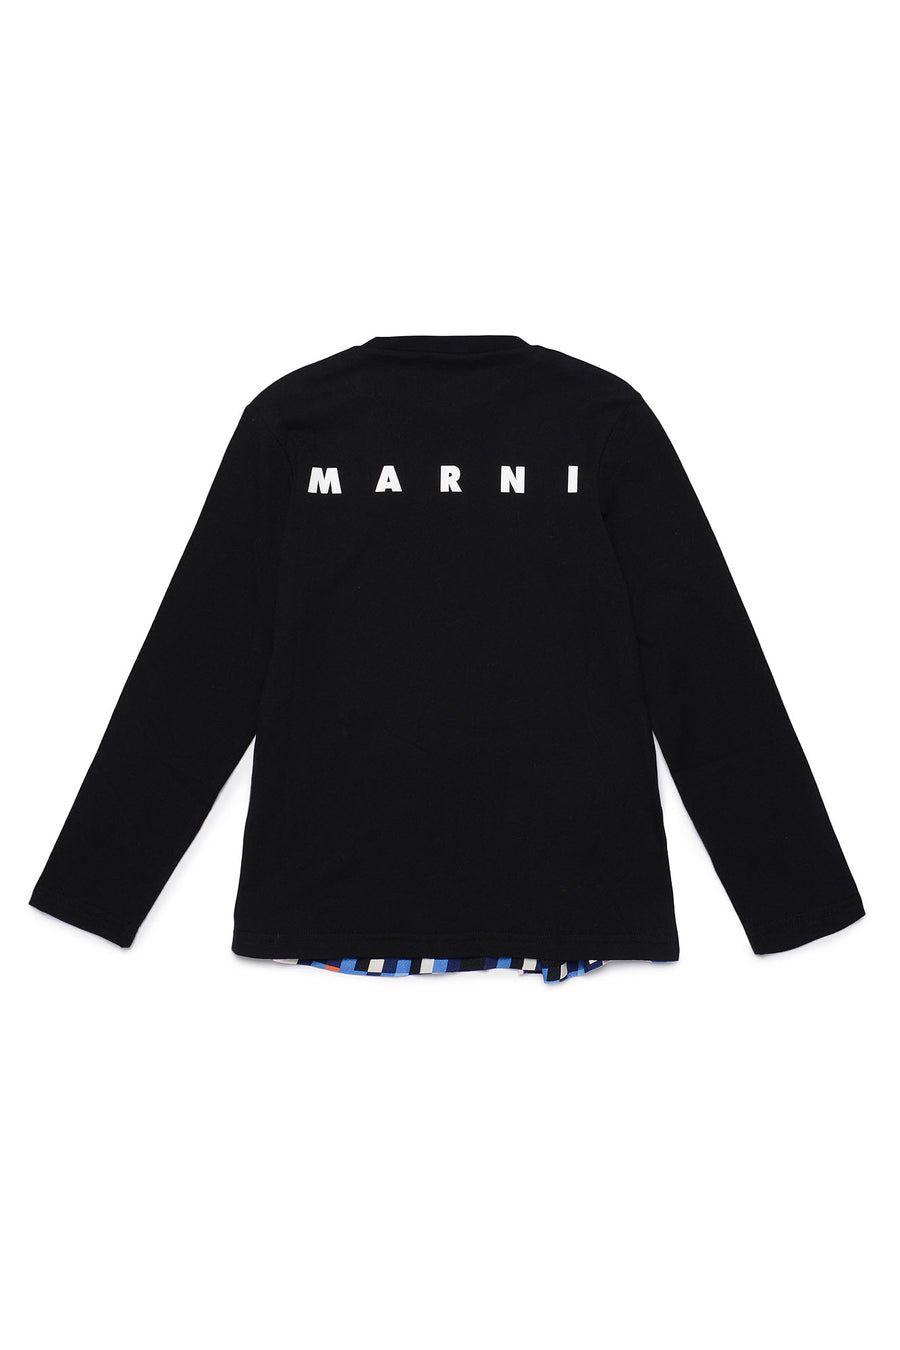 Pixelated T-Shirt by Marni